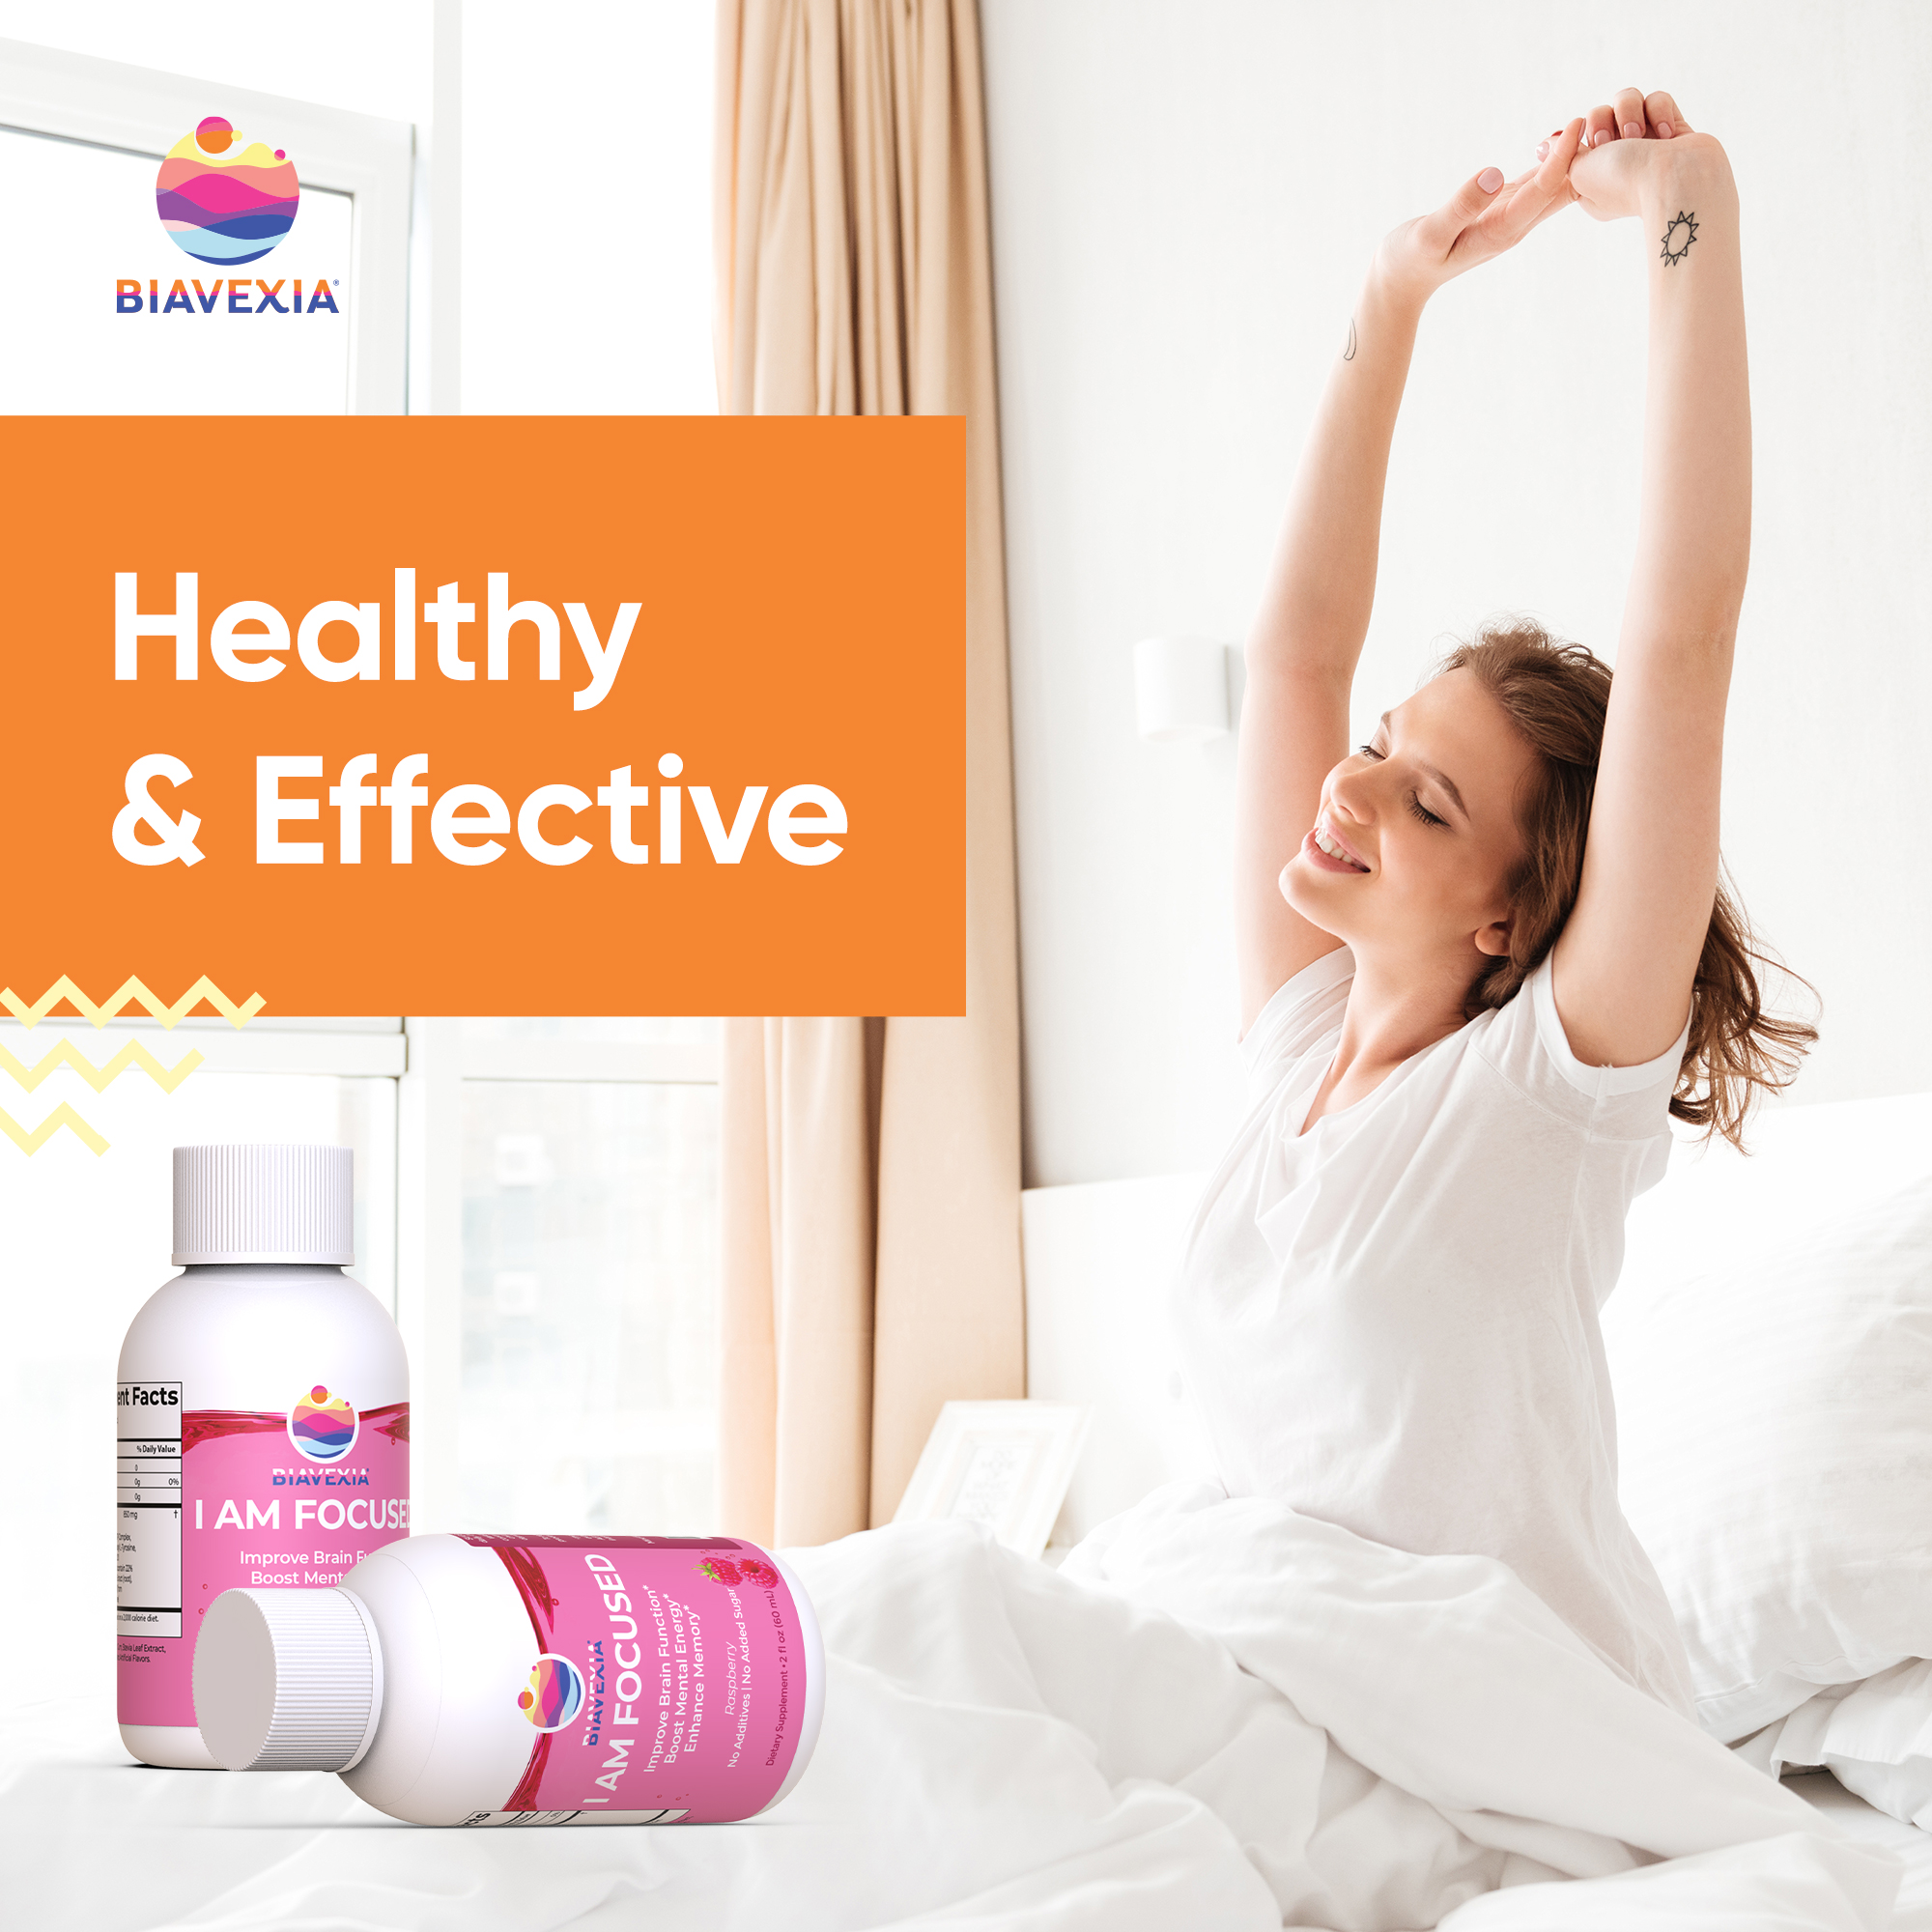 Biavexia-I Am Focused - Healthy Effective